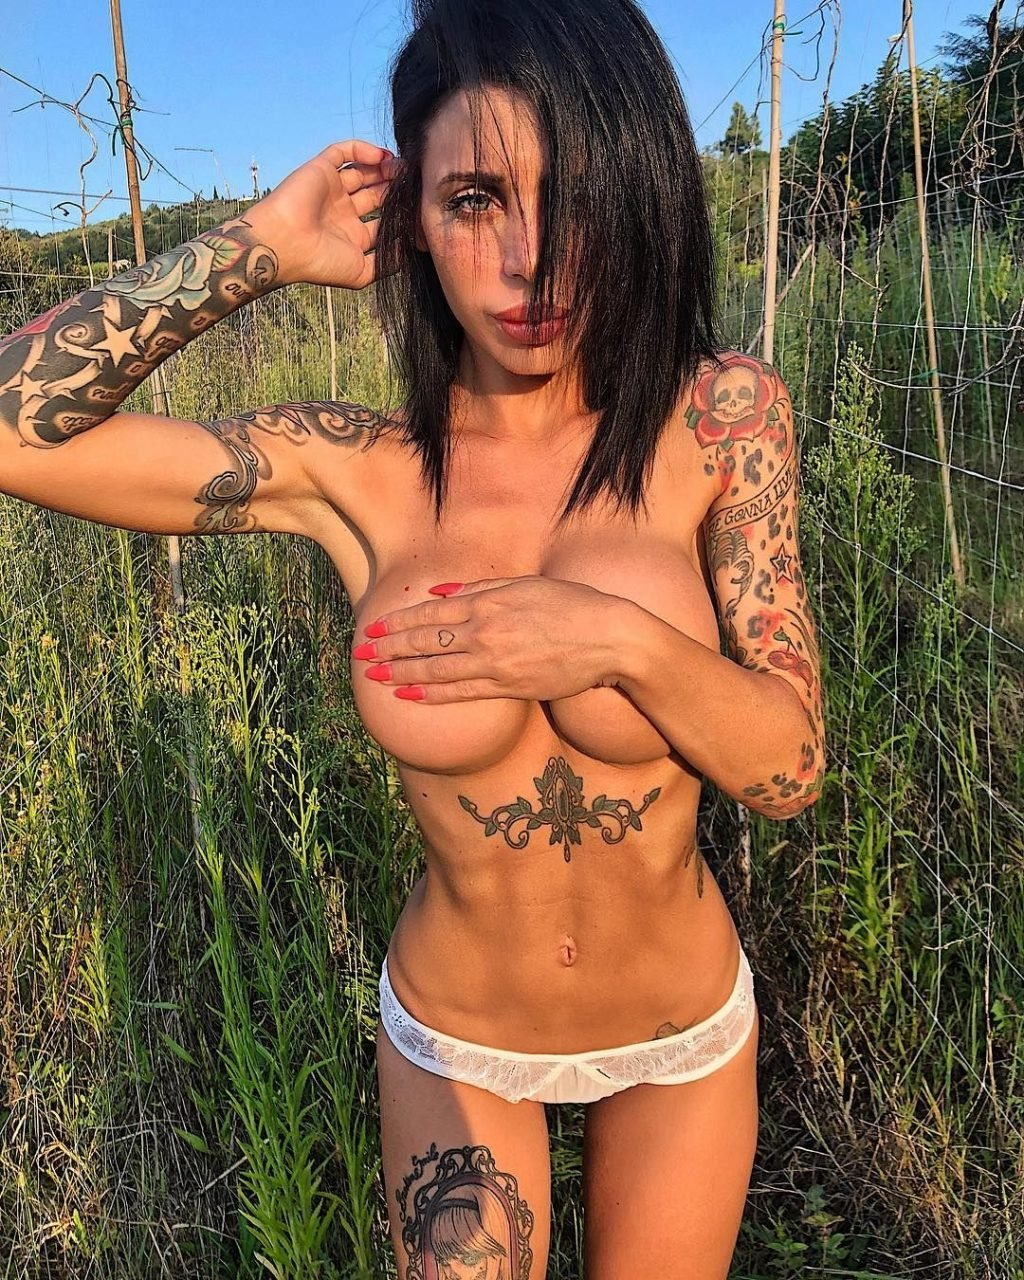 Pussy Alexis Mucci nude photos 2019